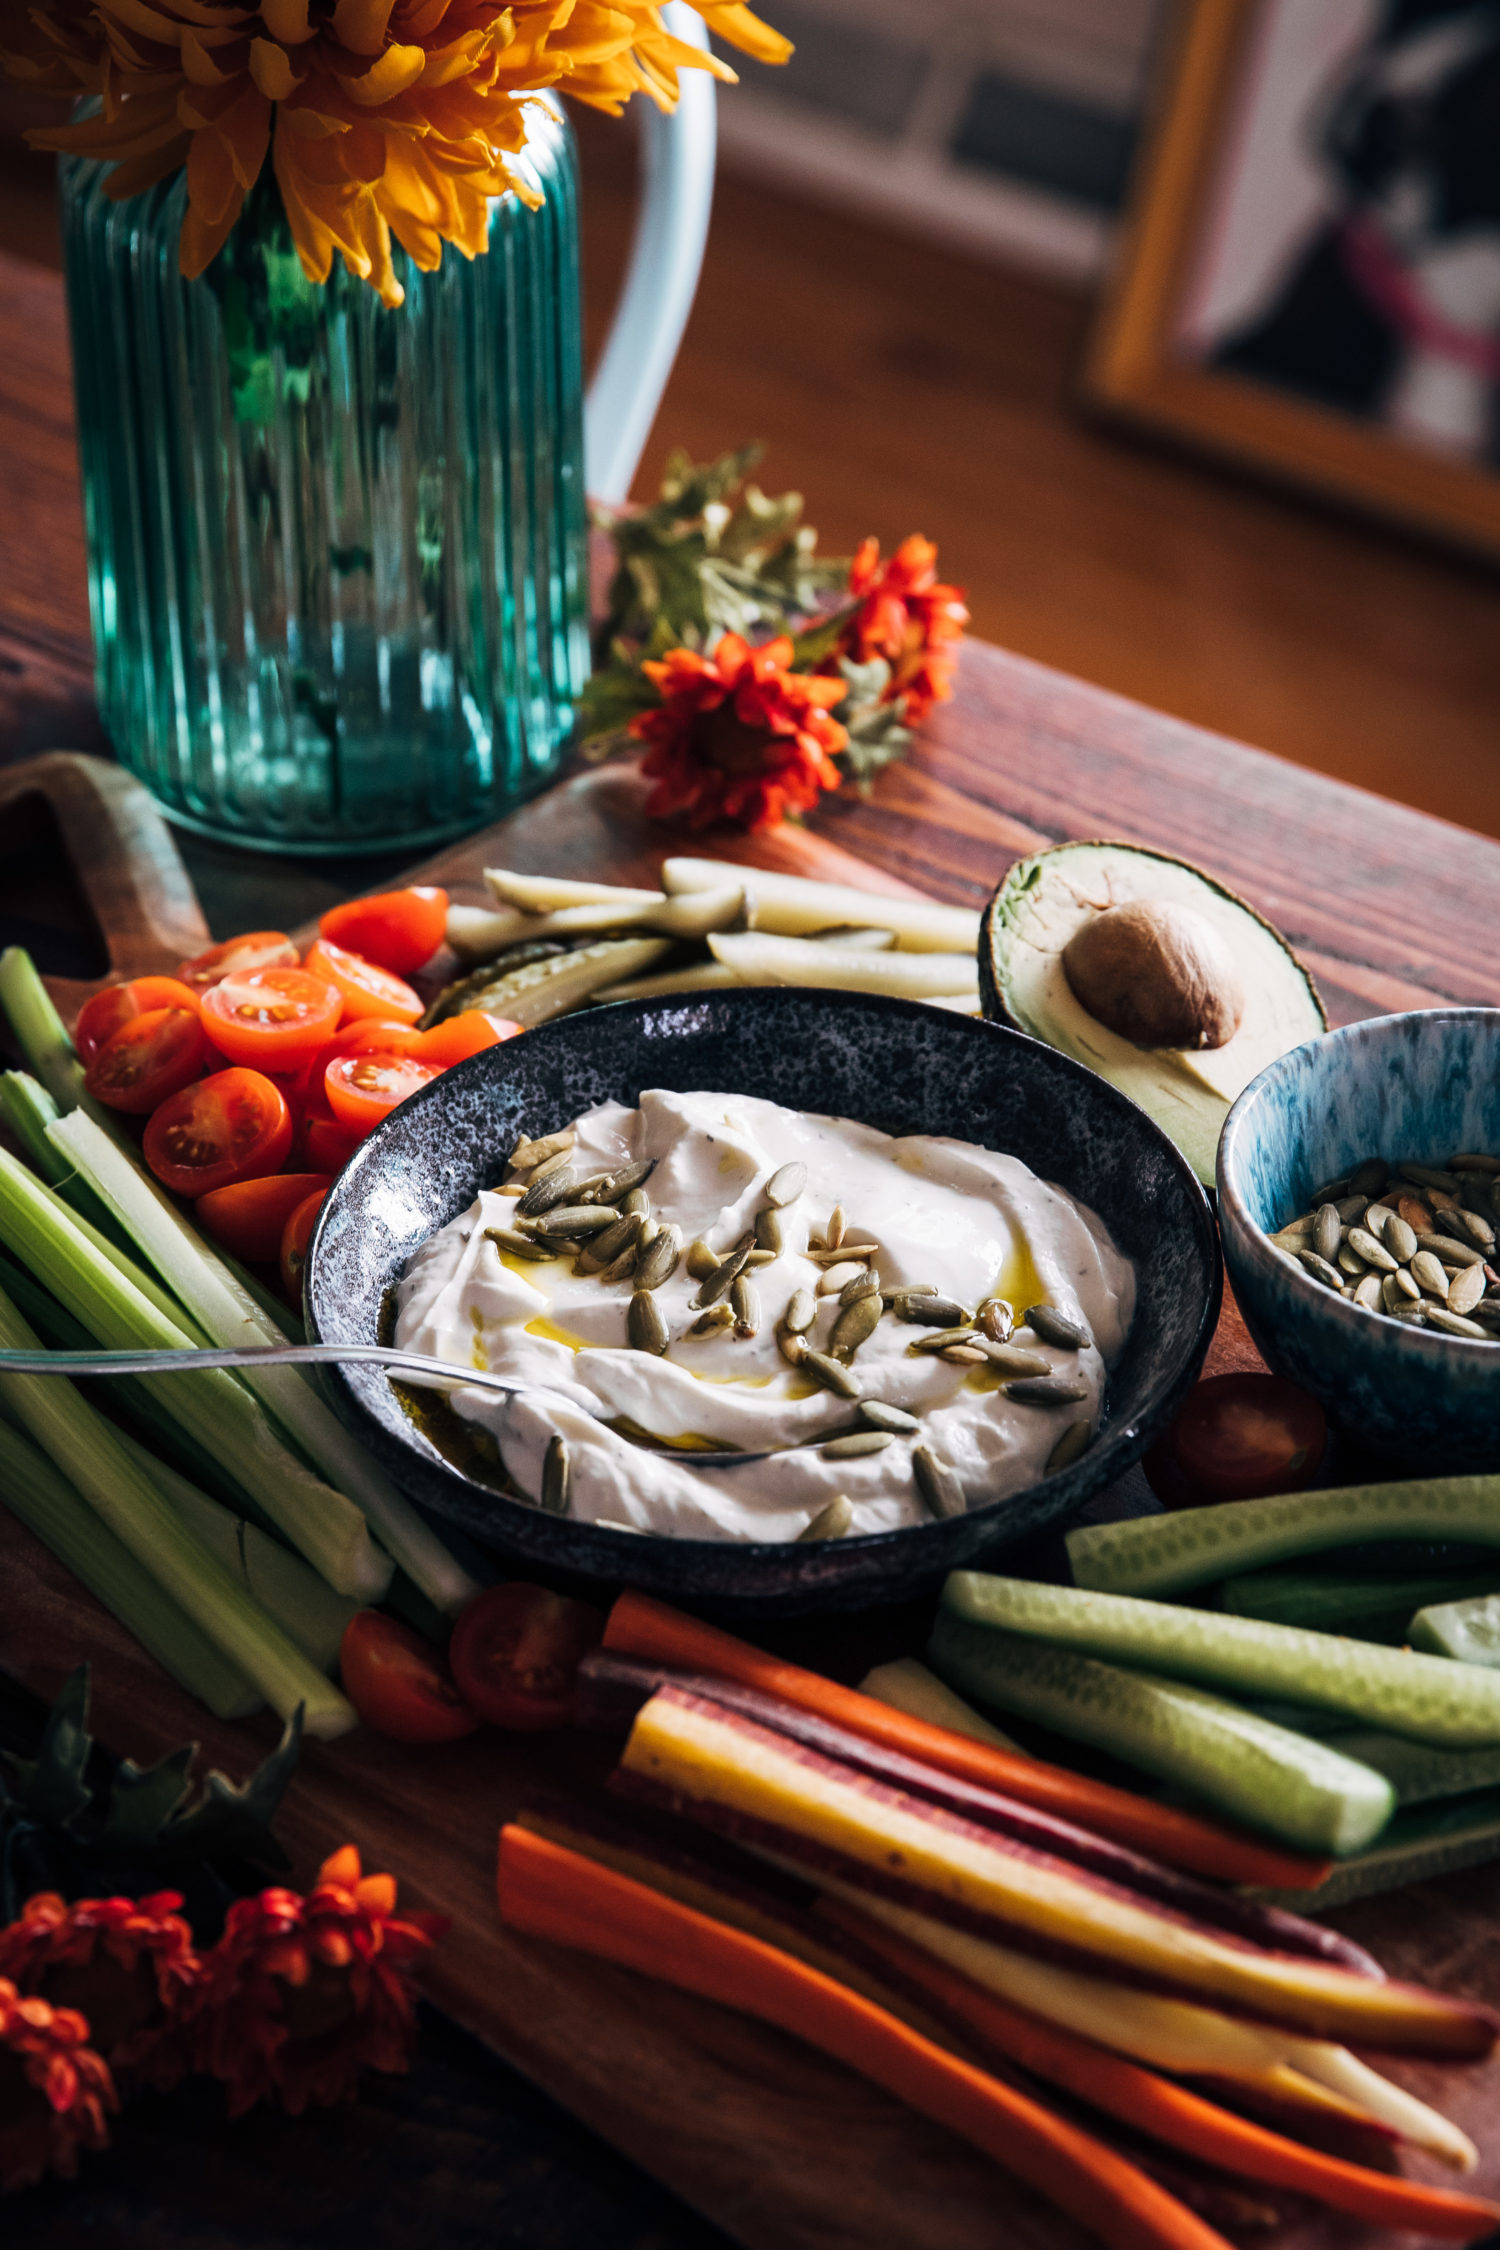 How To Make a Crudité Platter | Well and Full | #recipe #howto #vegetarian